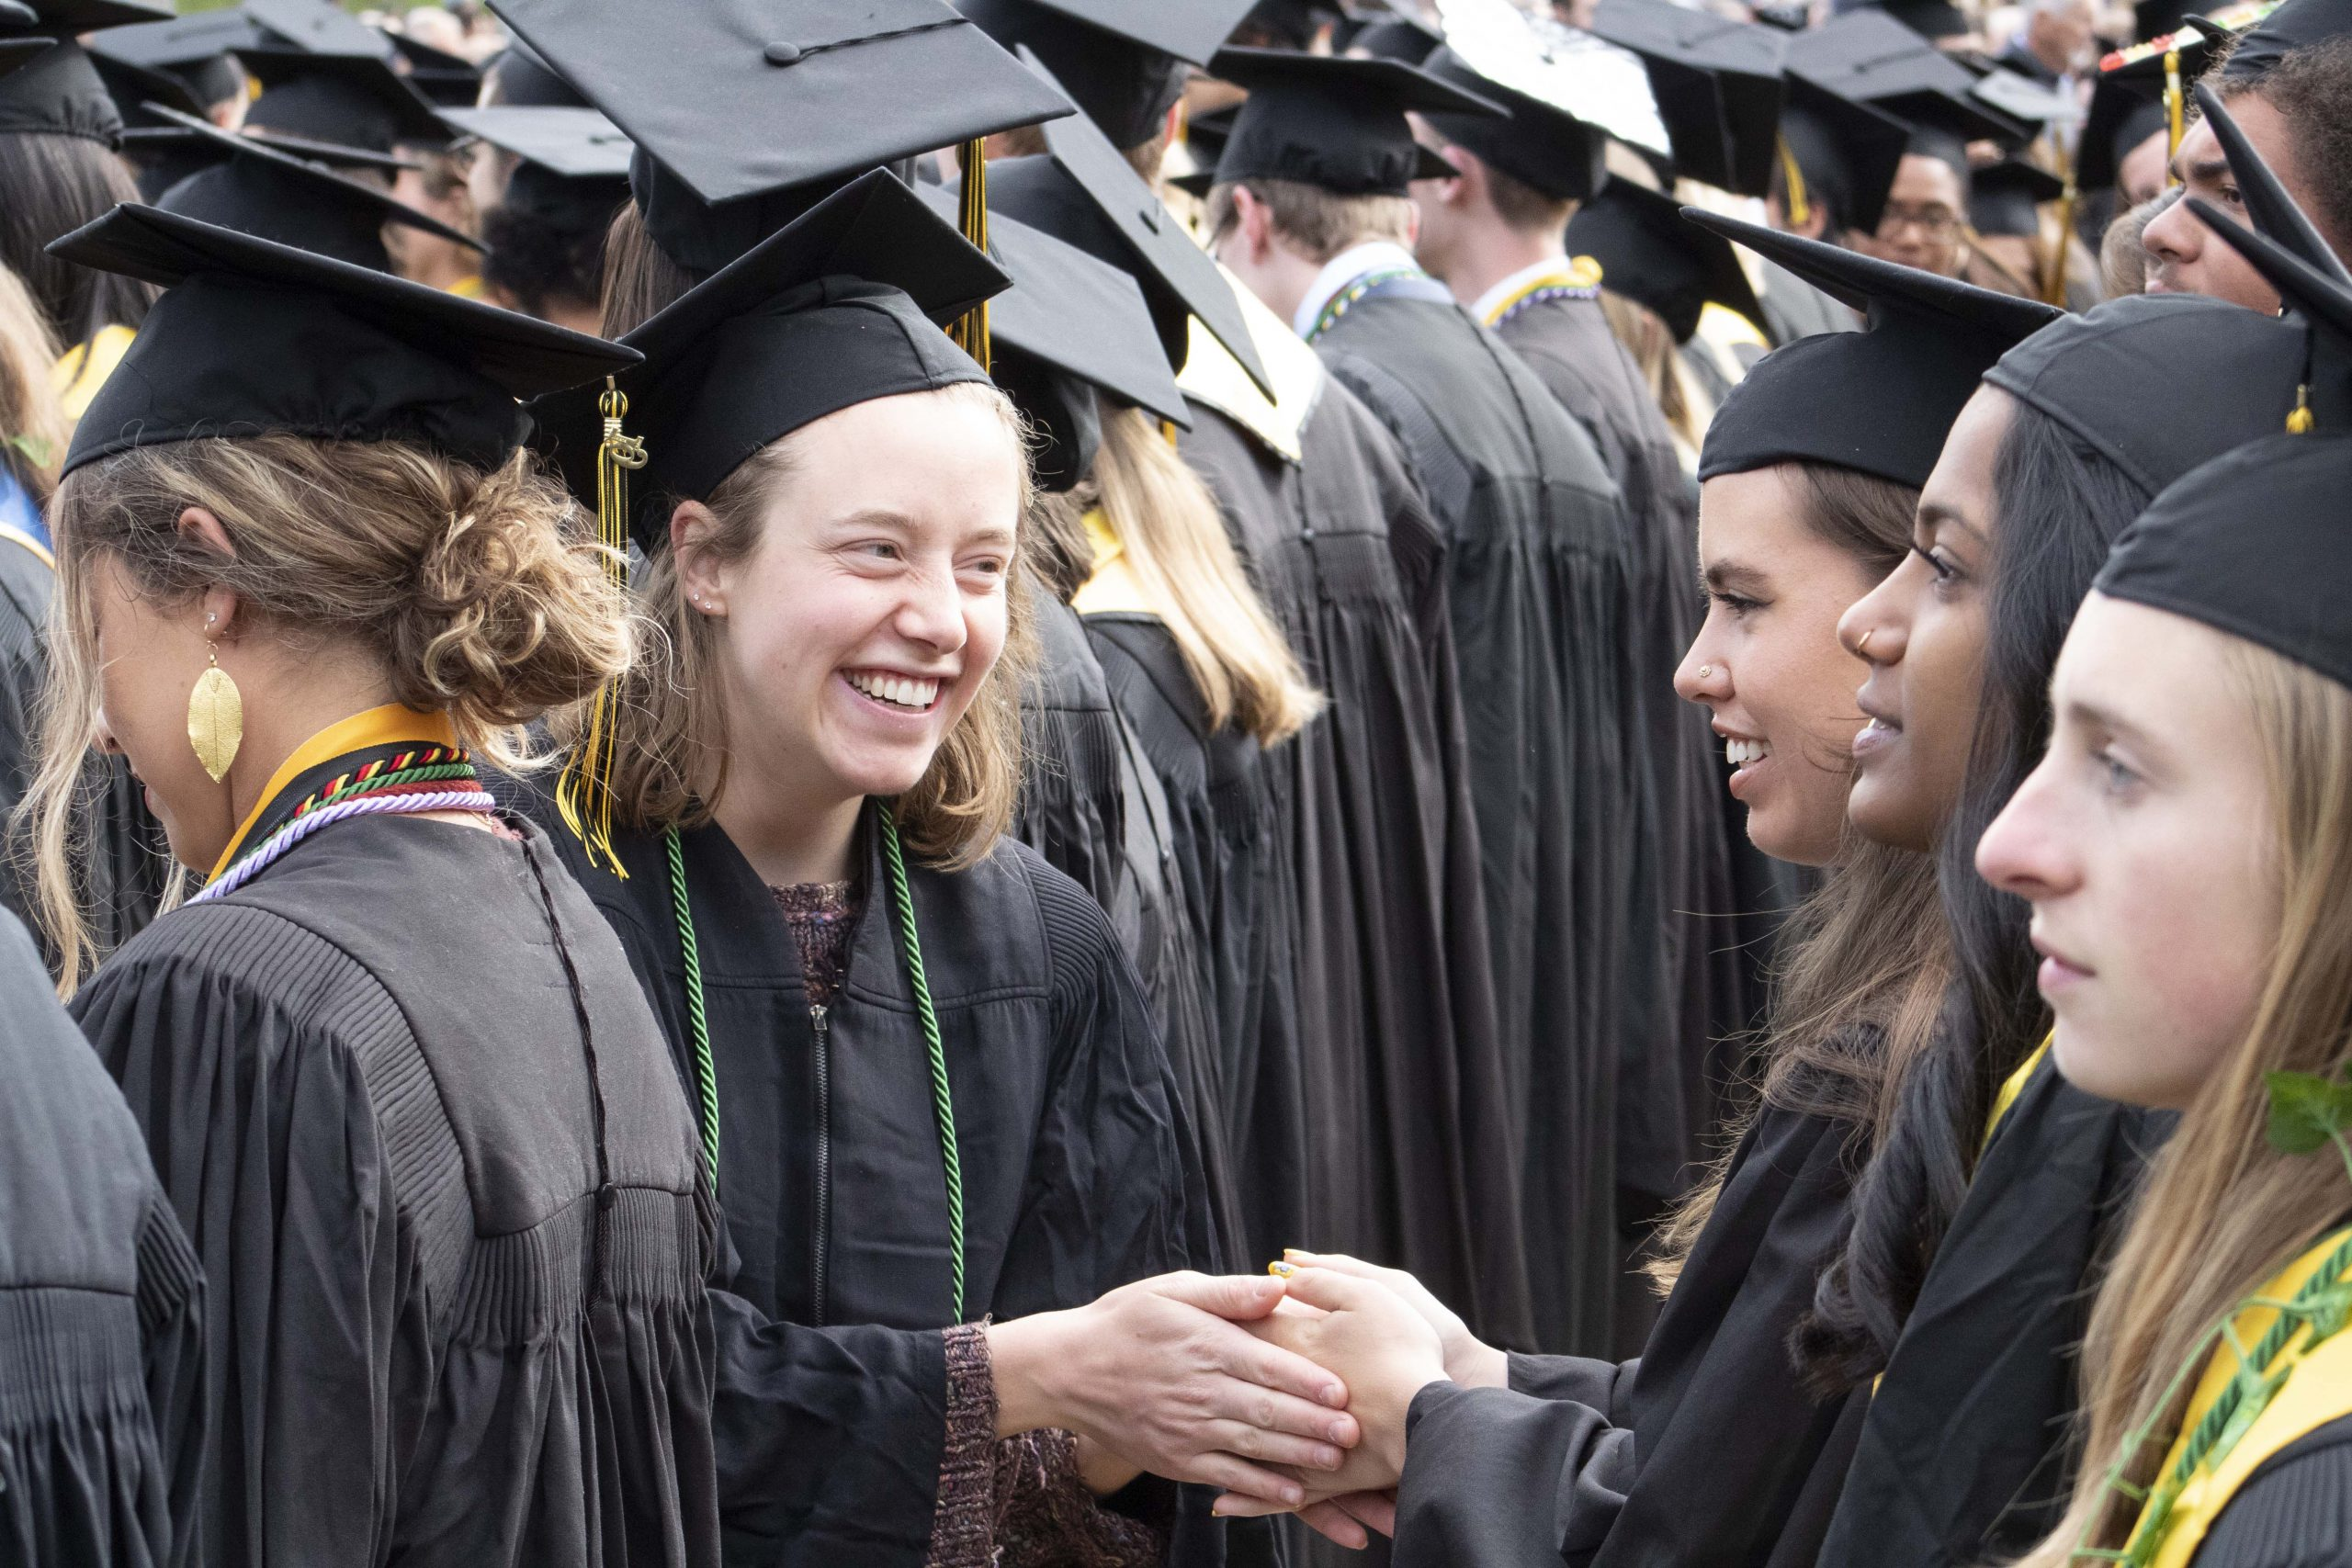 Graduates greet each other during commencement.